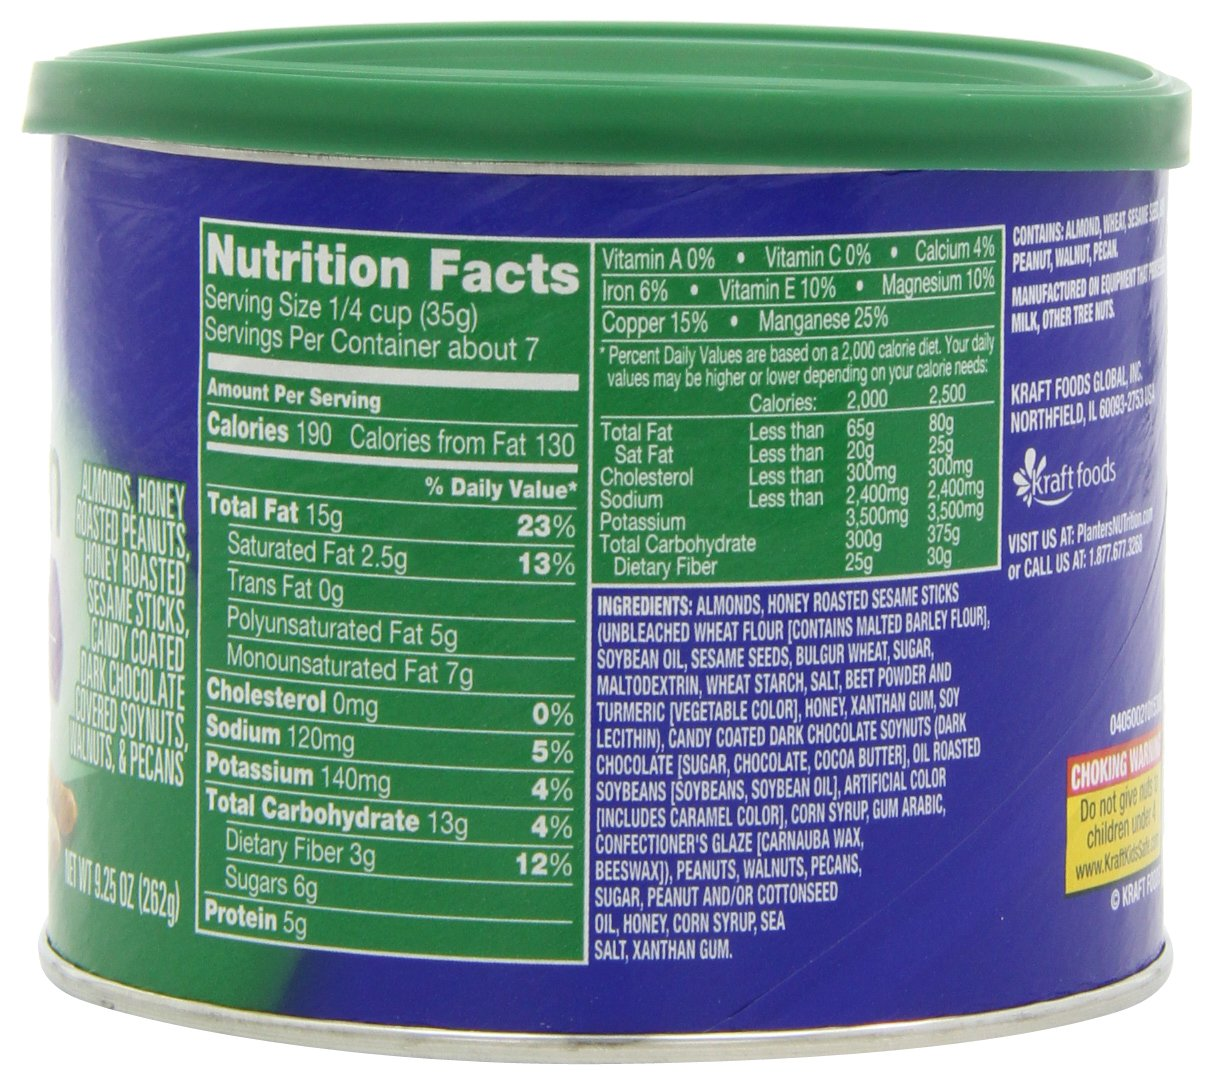 Planters trail mix nutrition facts on